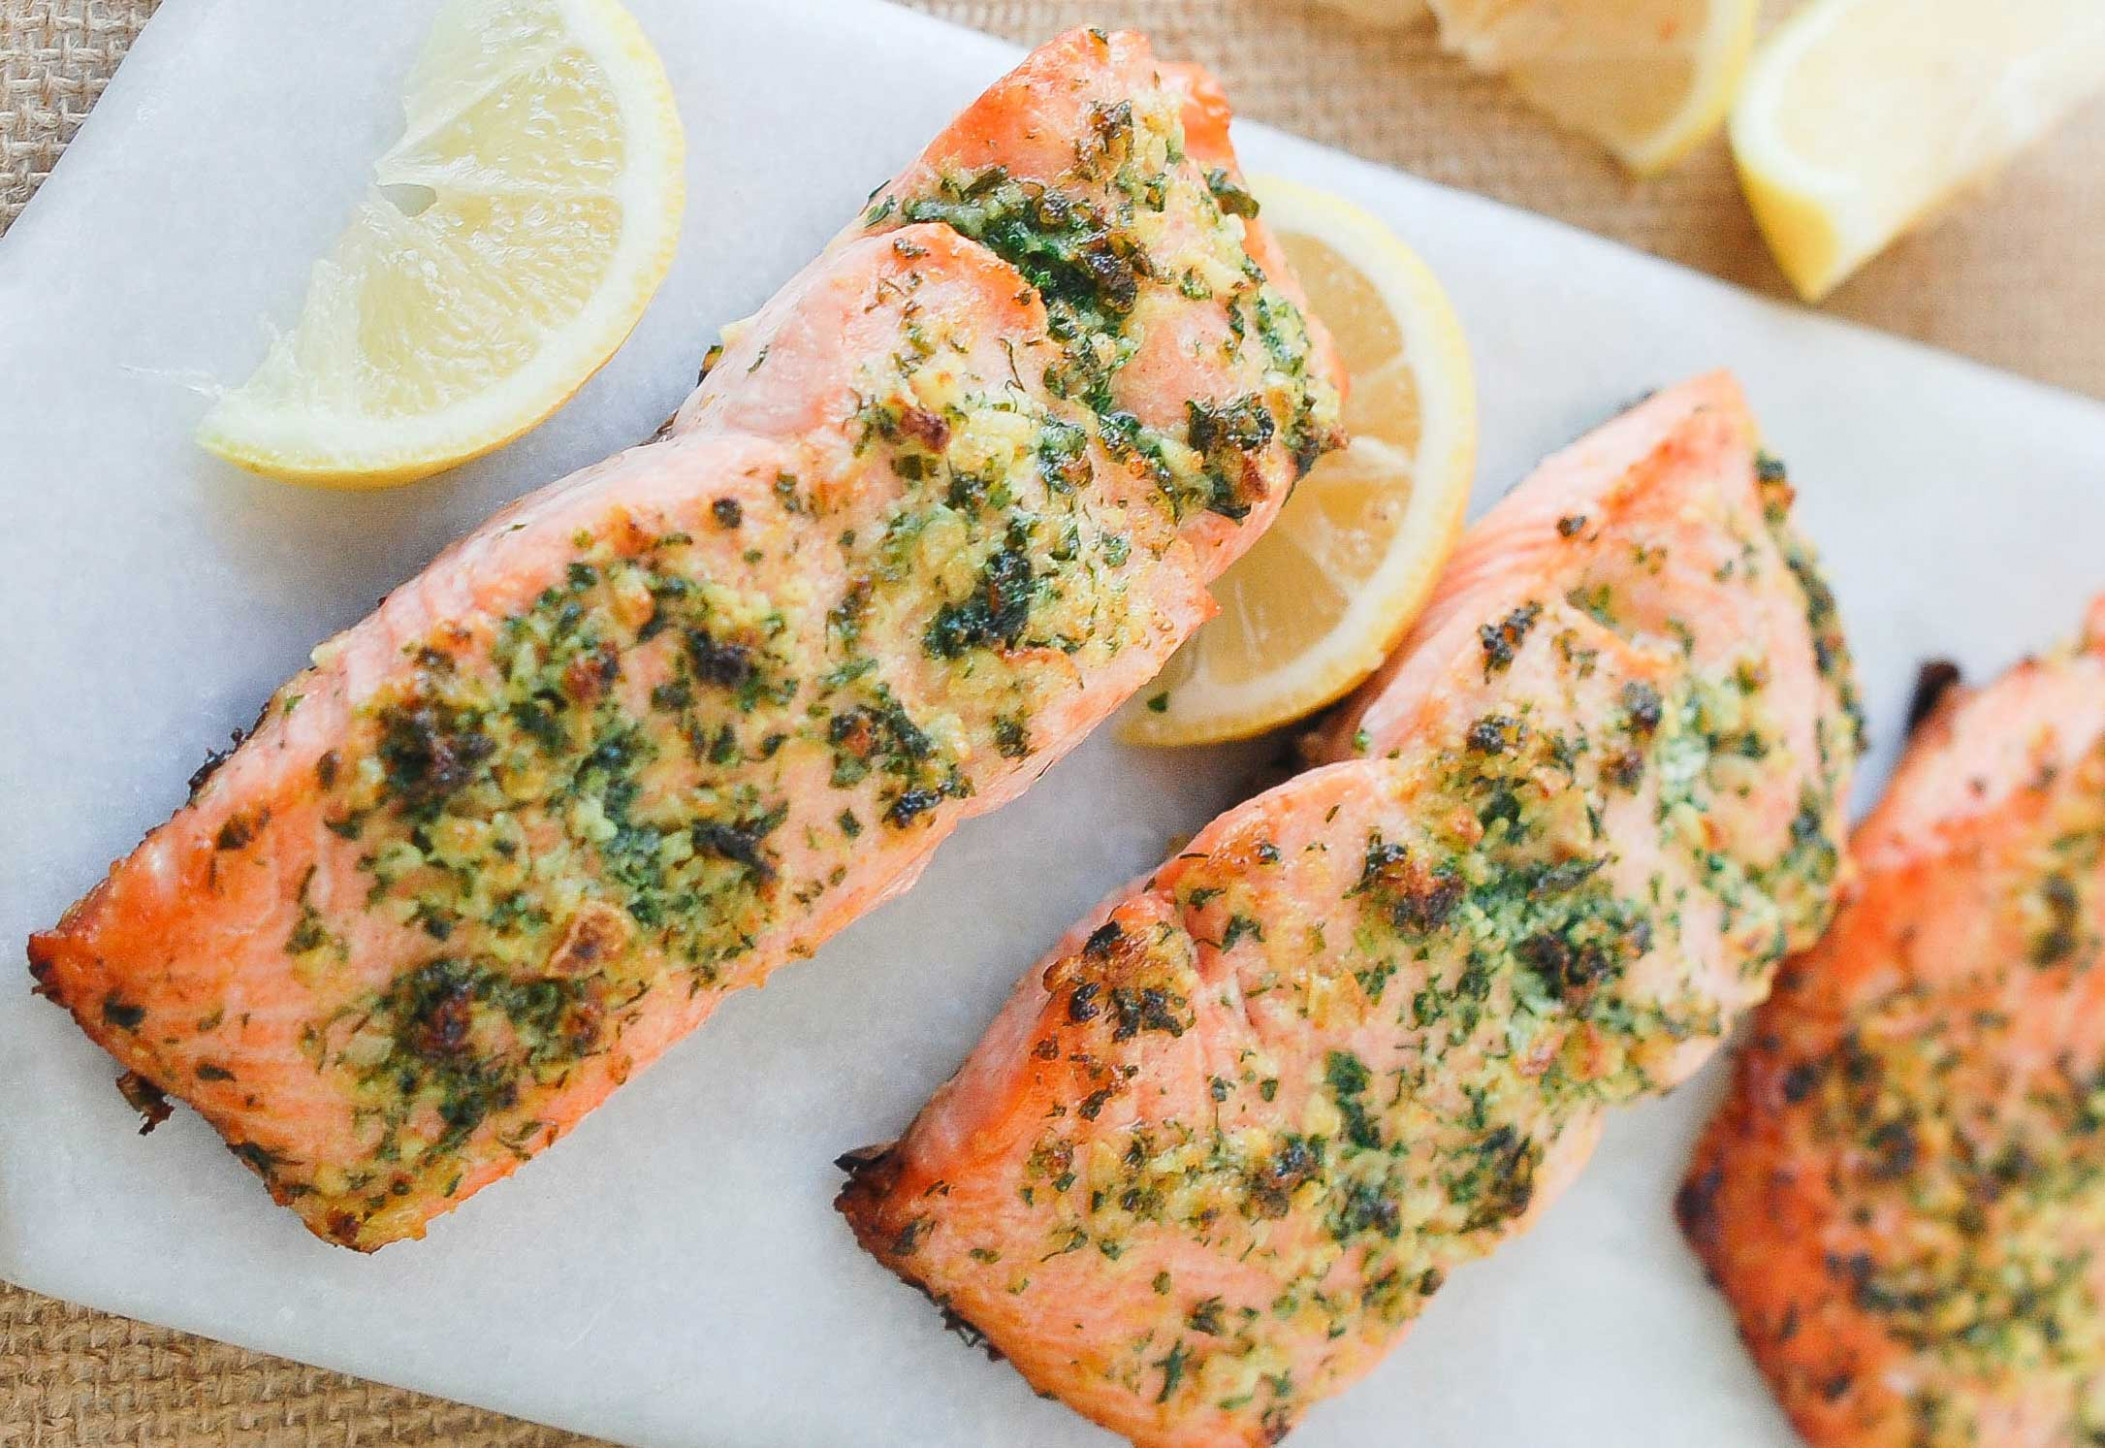 Grilled Salmon - All recipes blog, Cuisine,Dinner - dinner recipes blog